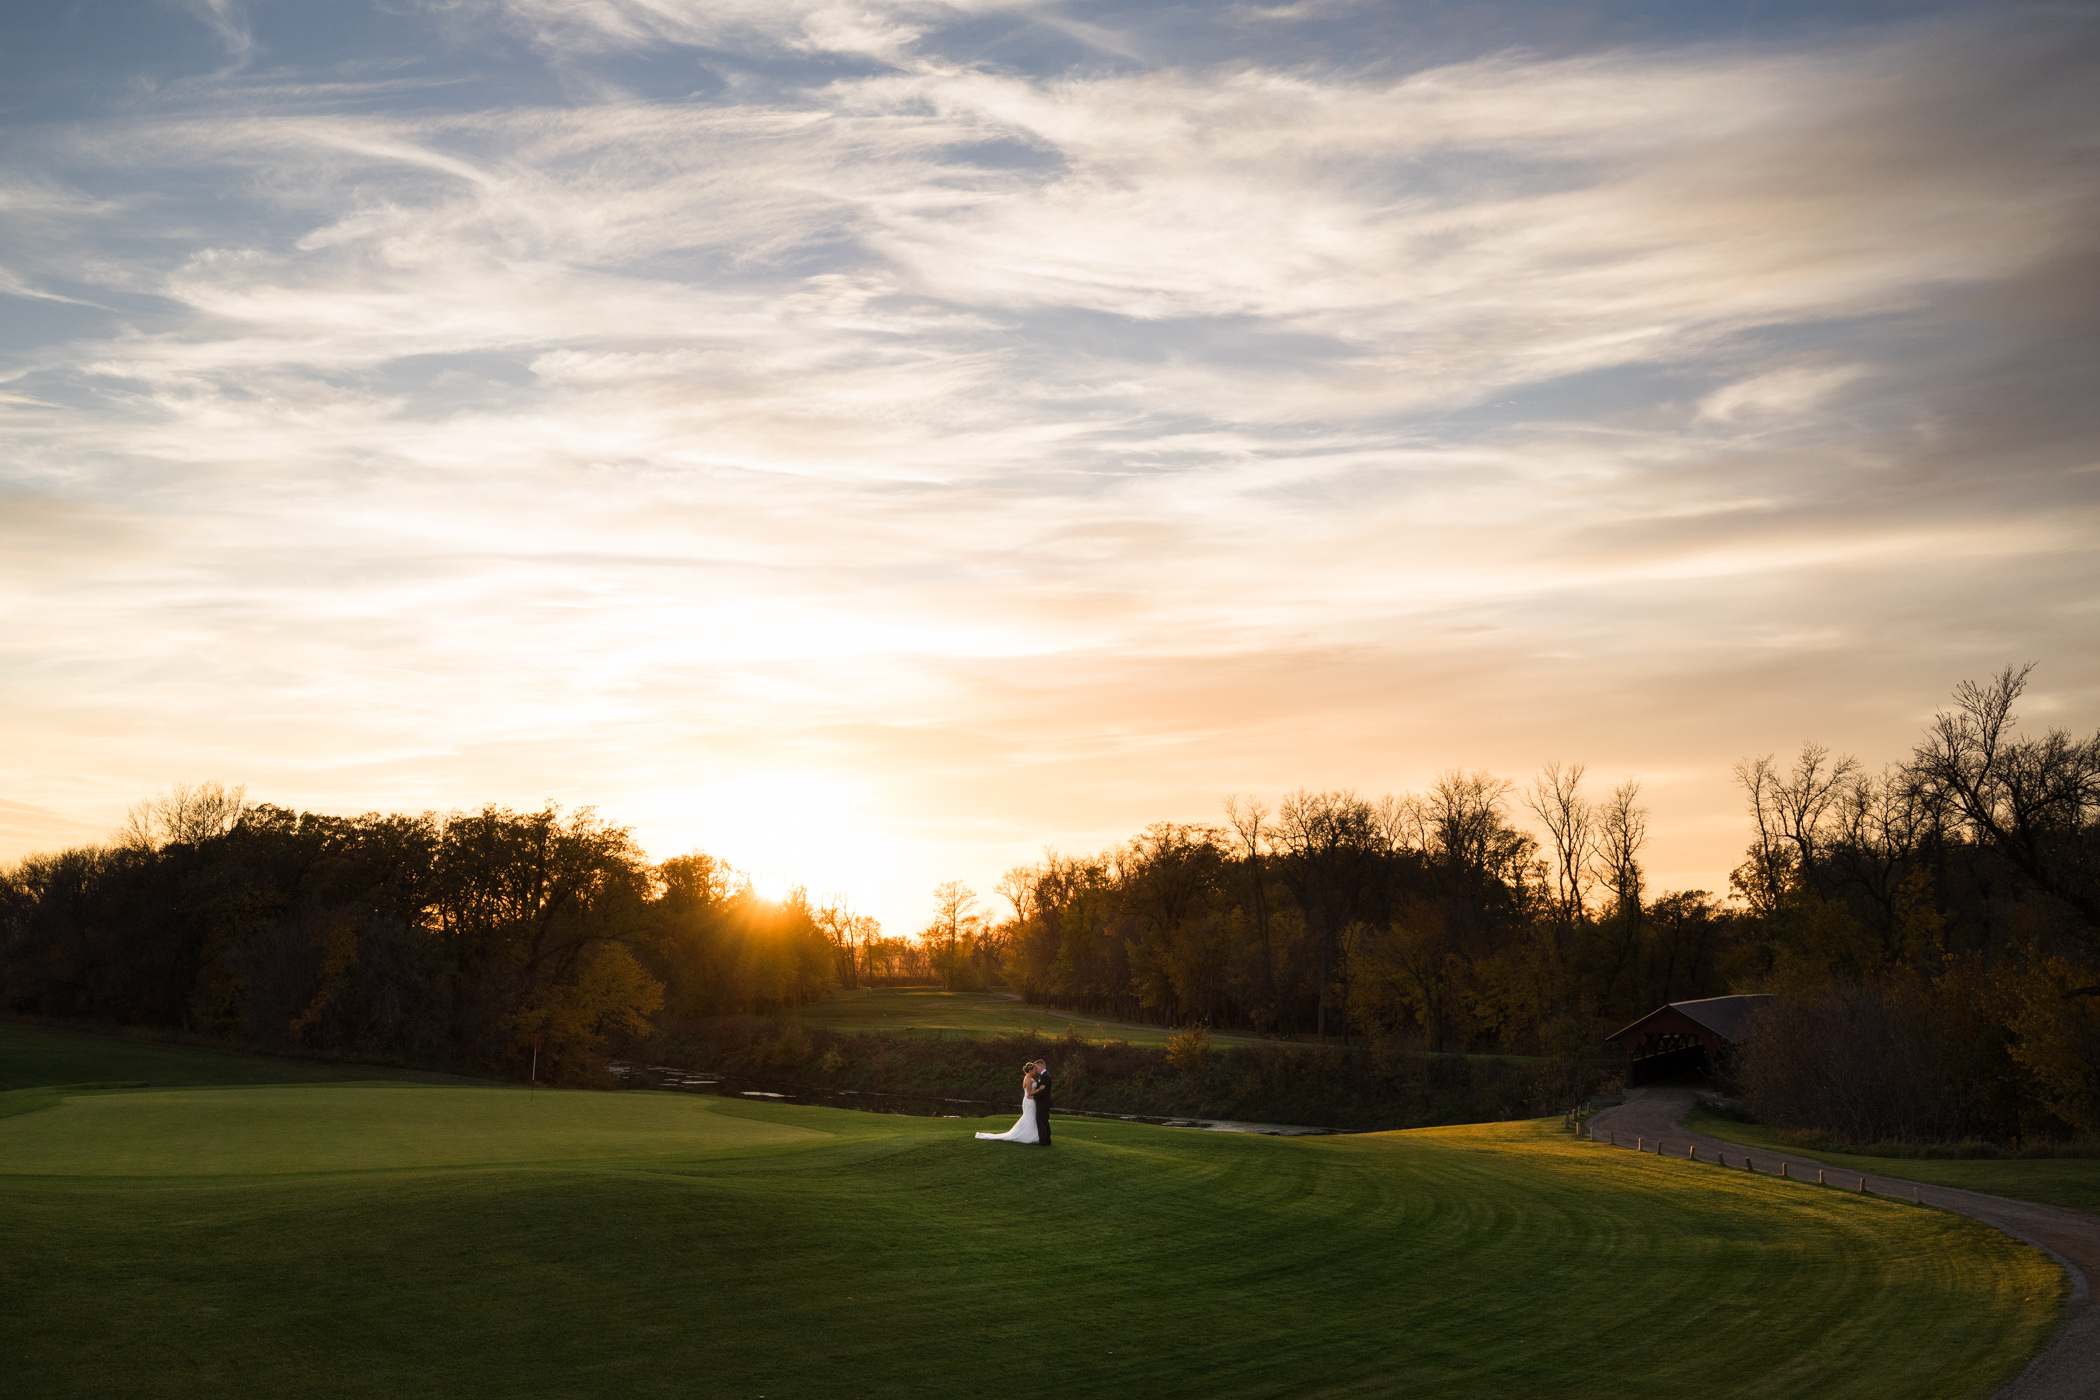 ct-bridges golf course wedding-1427.jpg